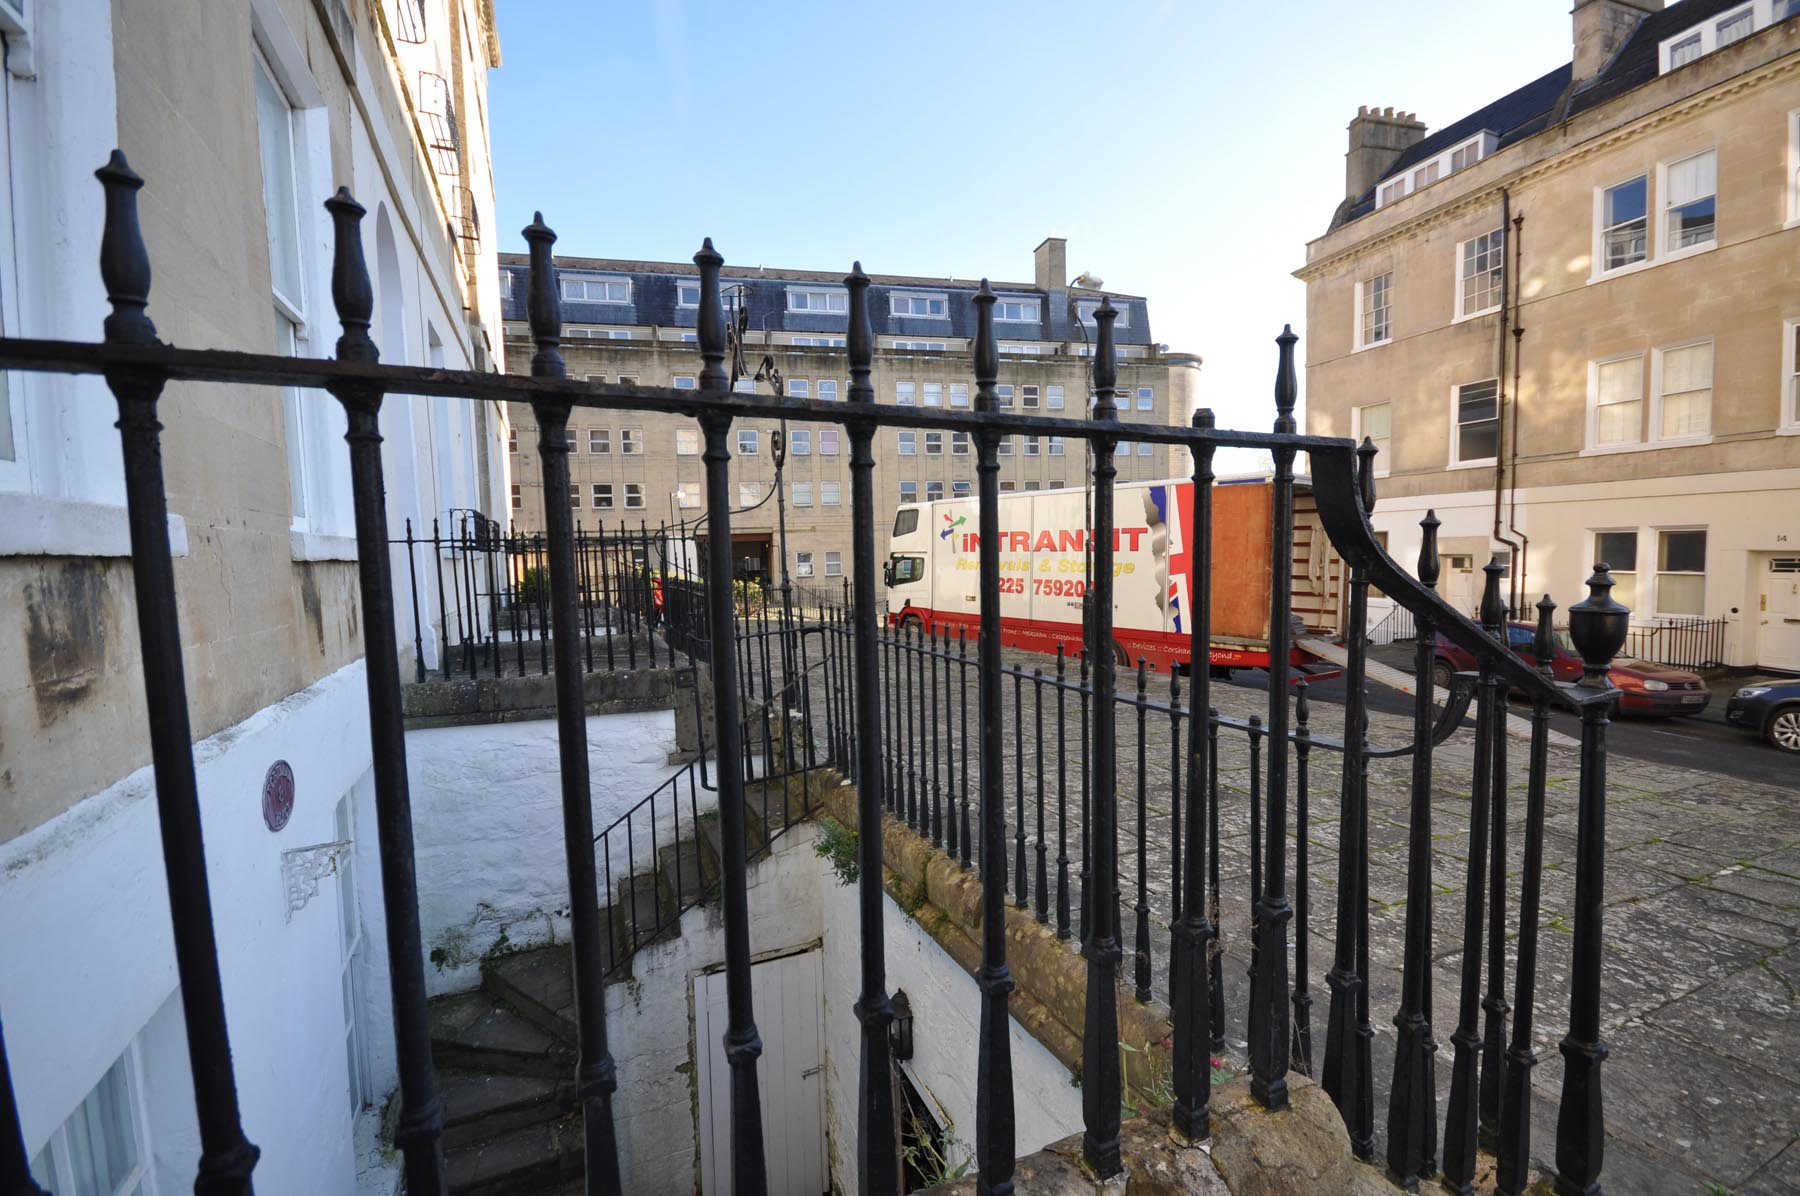 Moving house in Bath